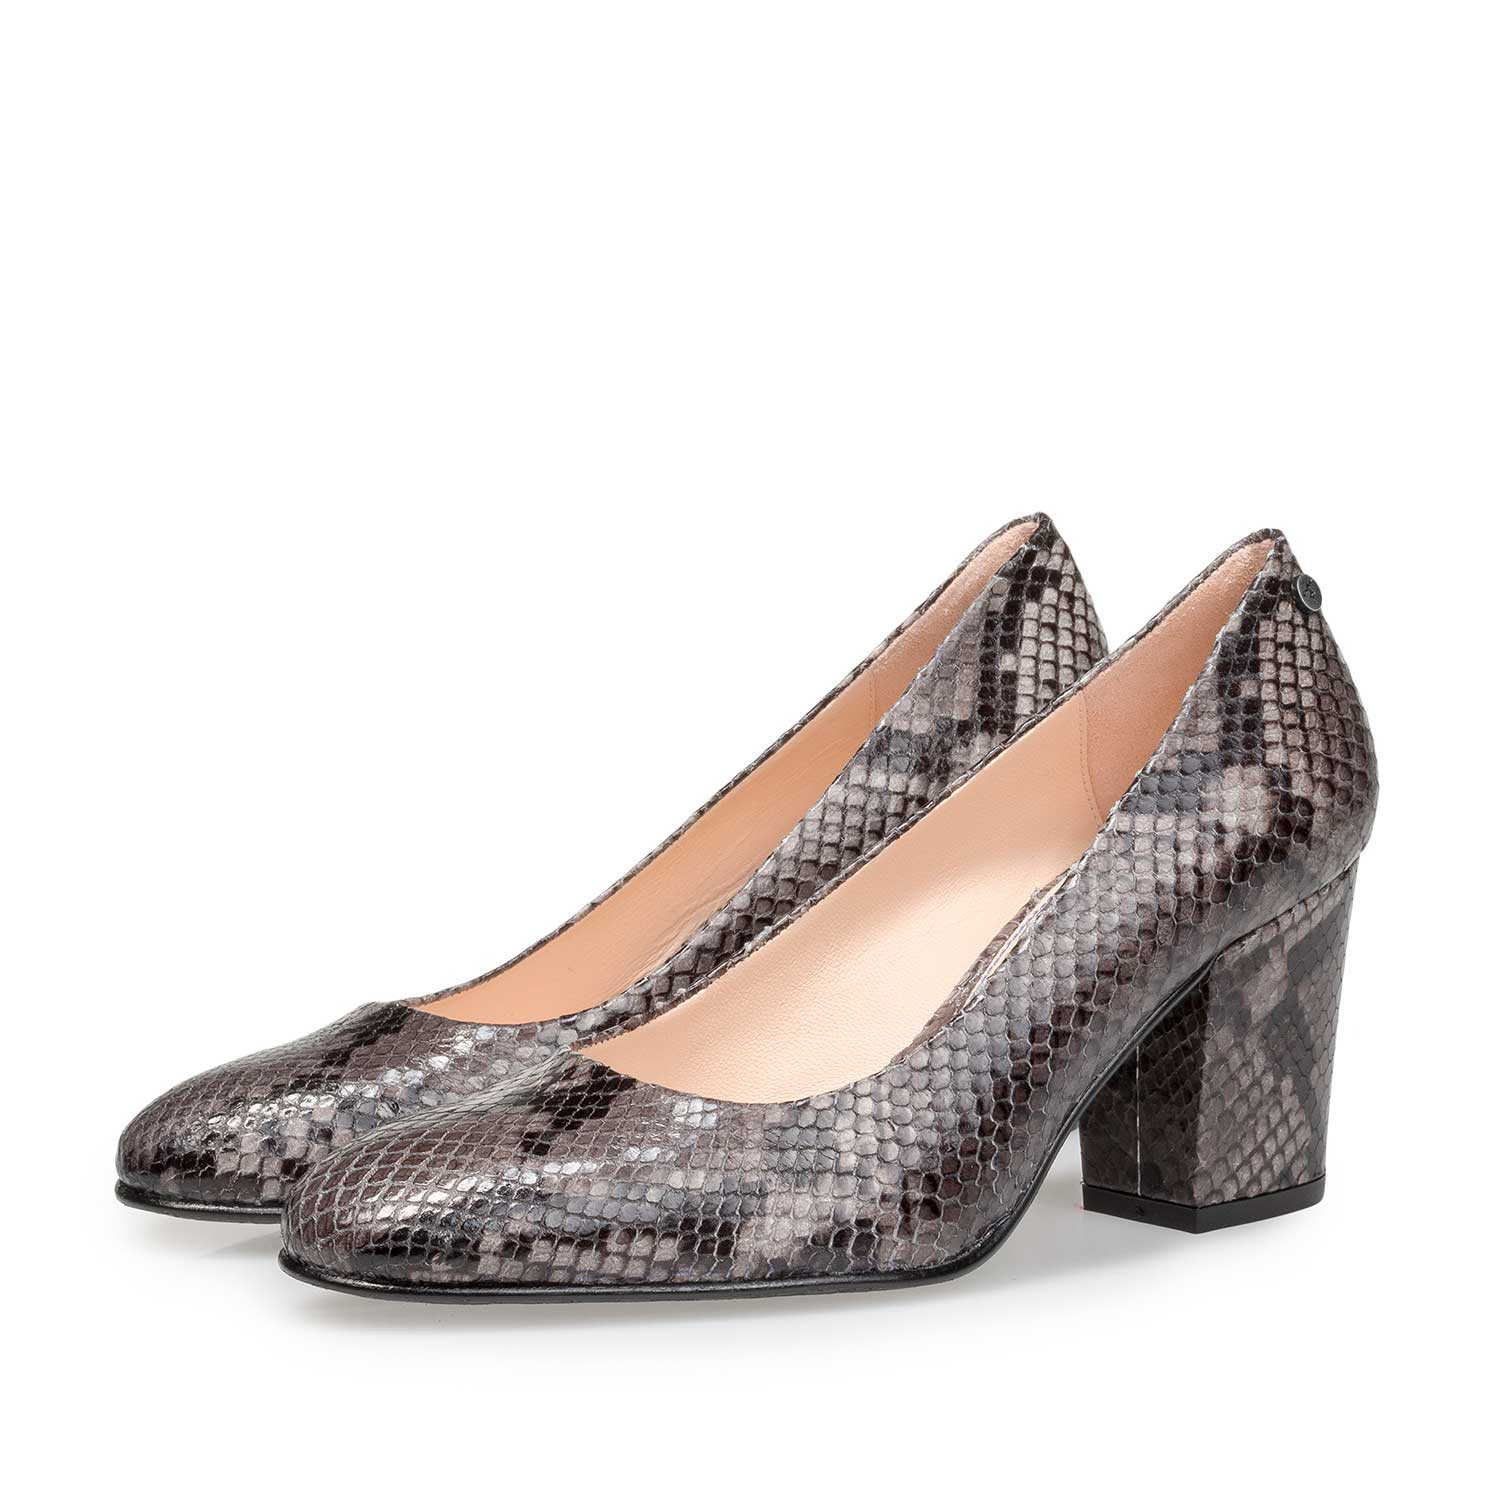 85520/11 - Grey leather pumps with snake print